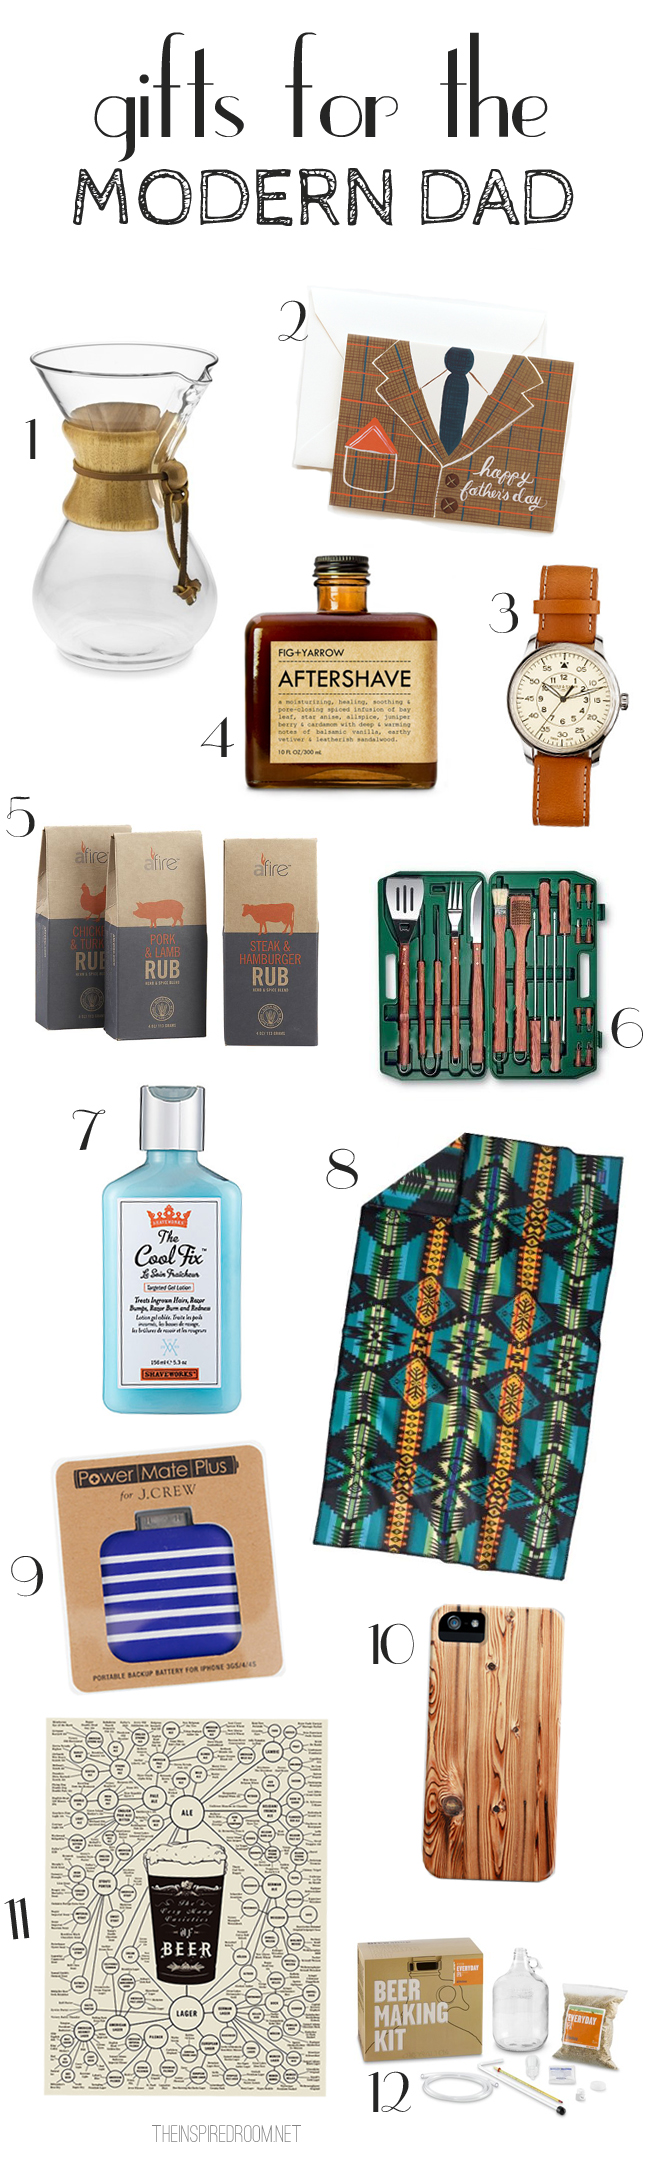 Gifts for Fathers {Gift Ideas for the Modern Dad}